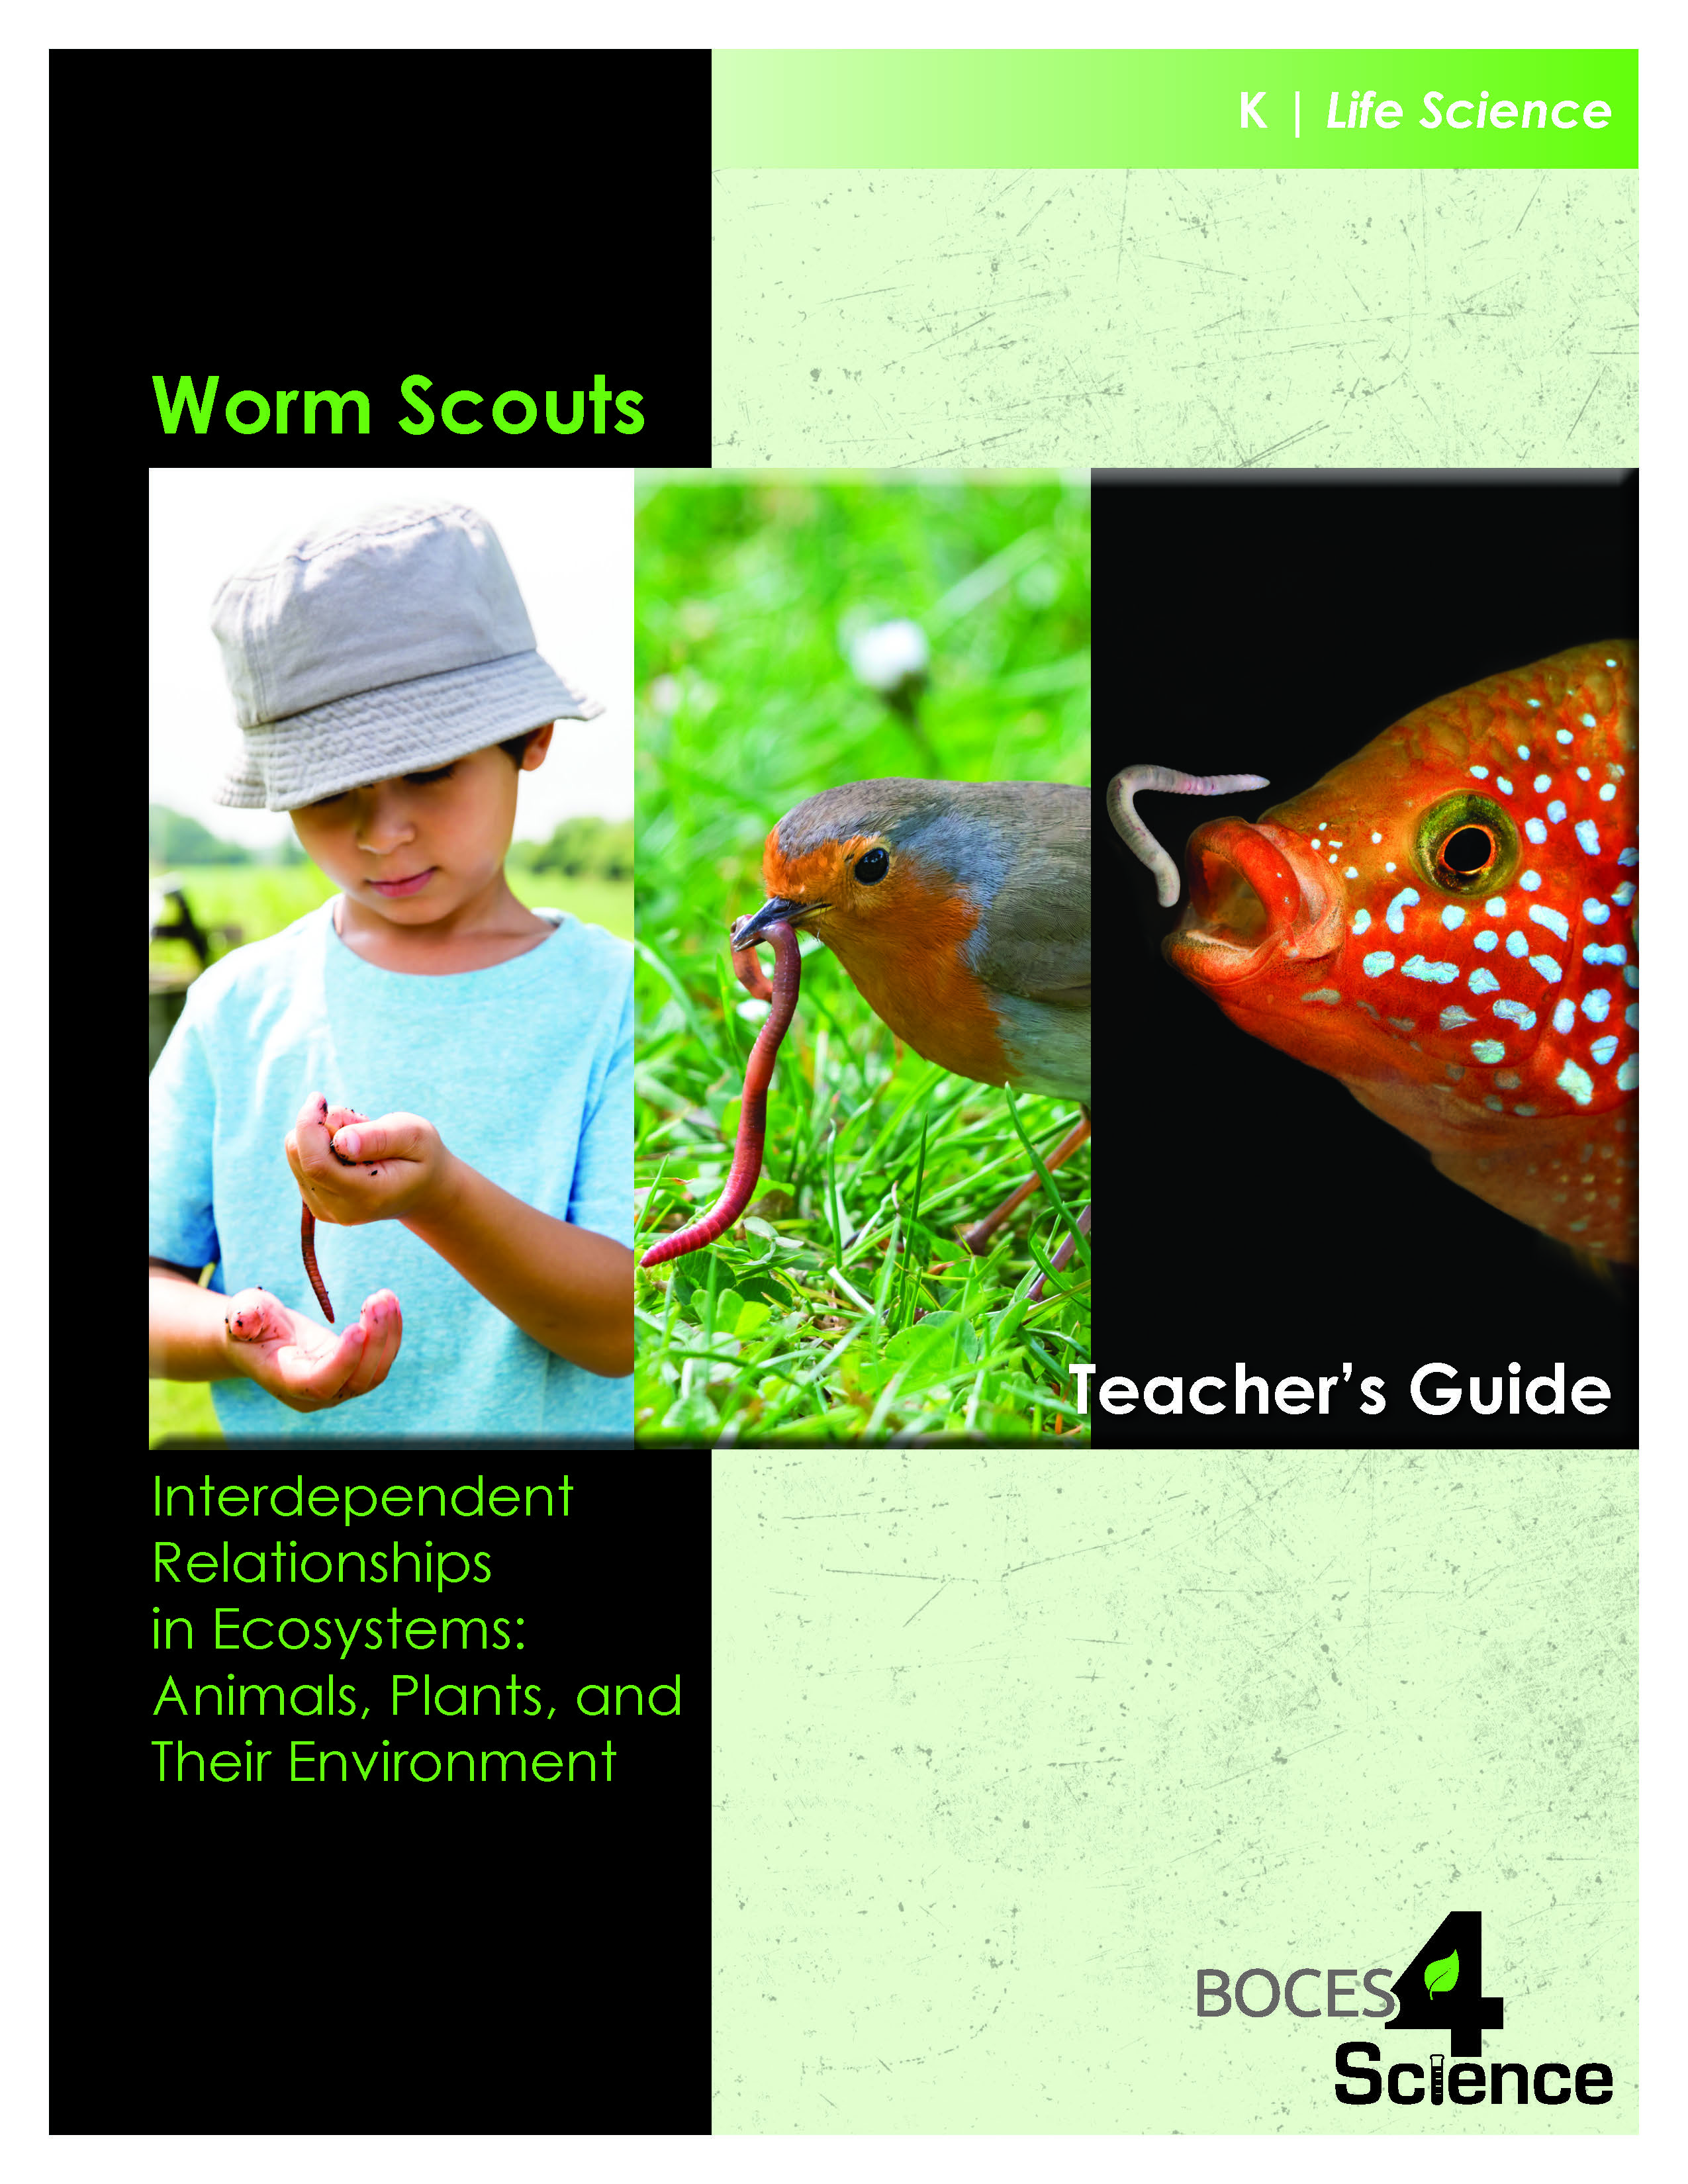 Worm Scouts